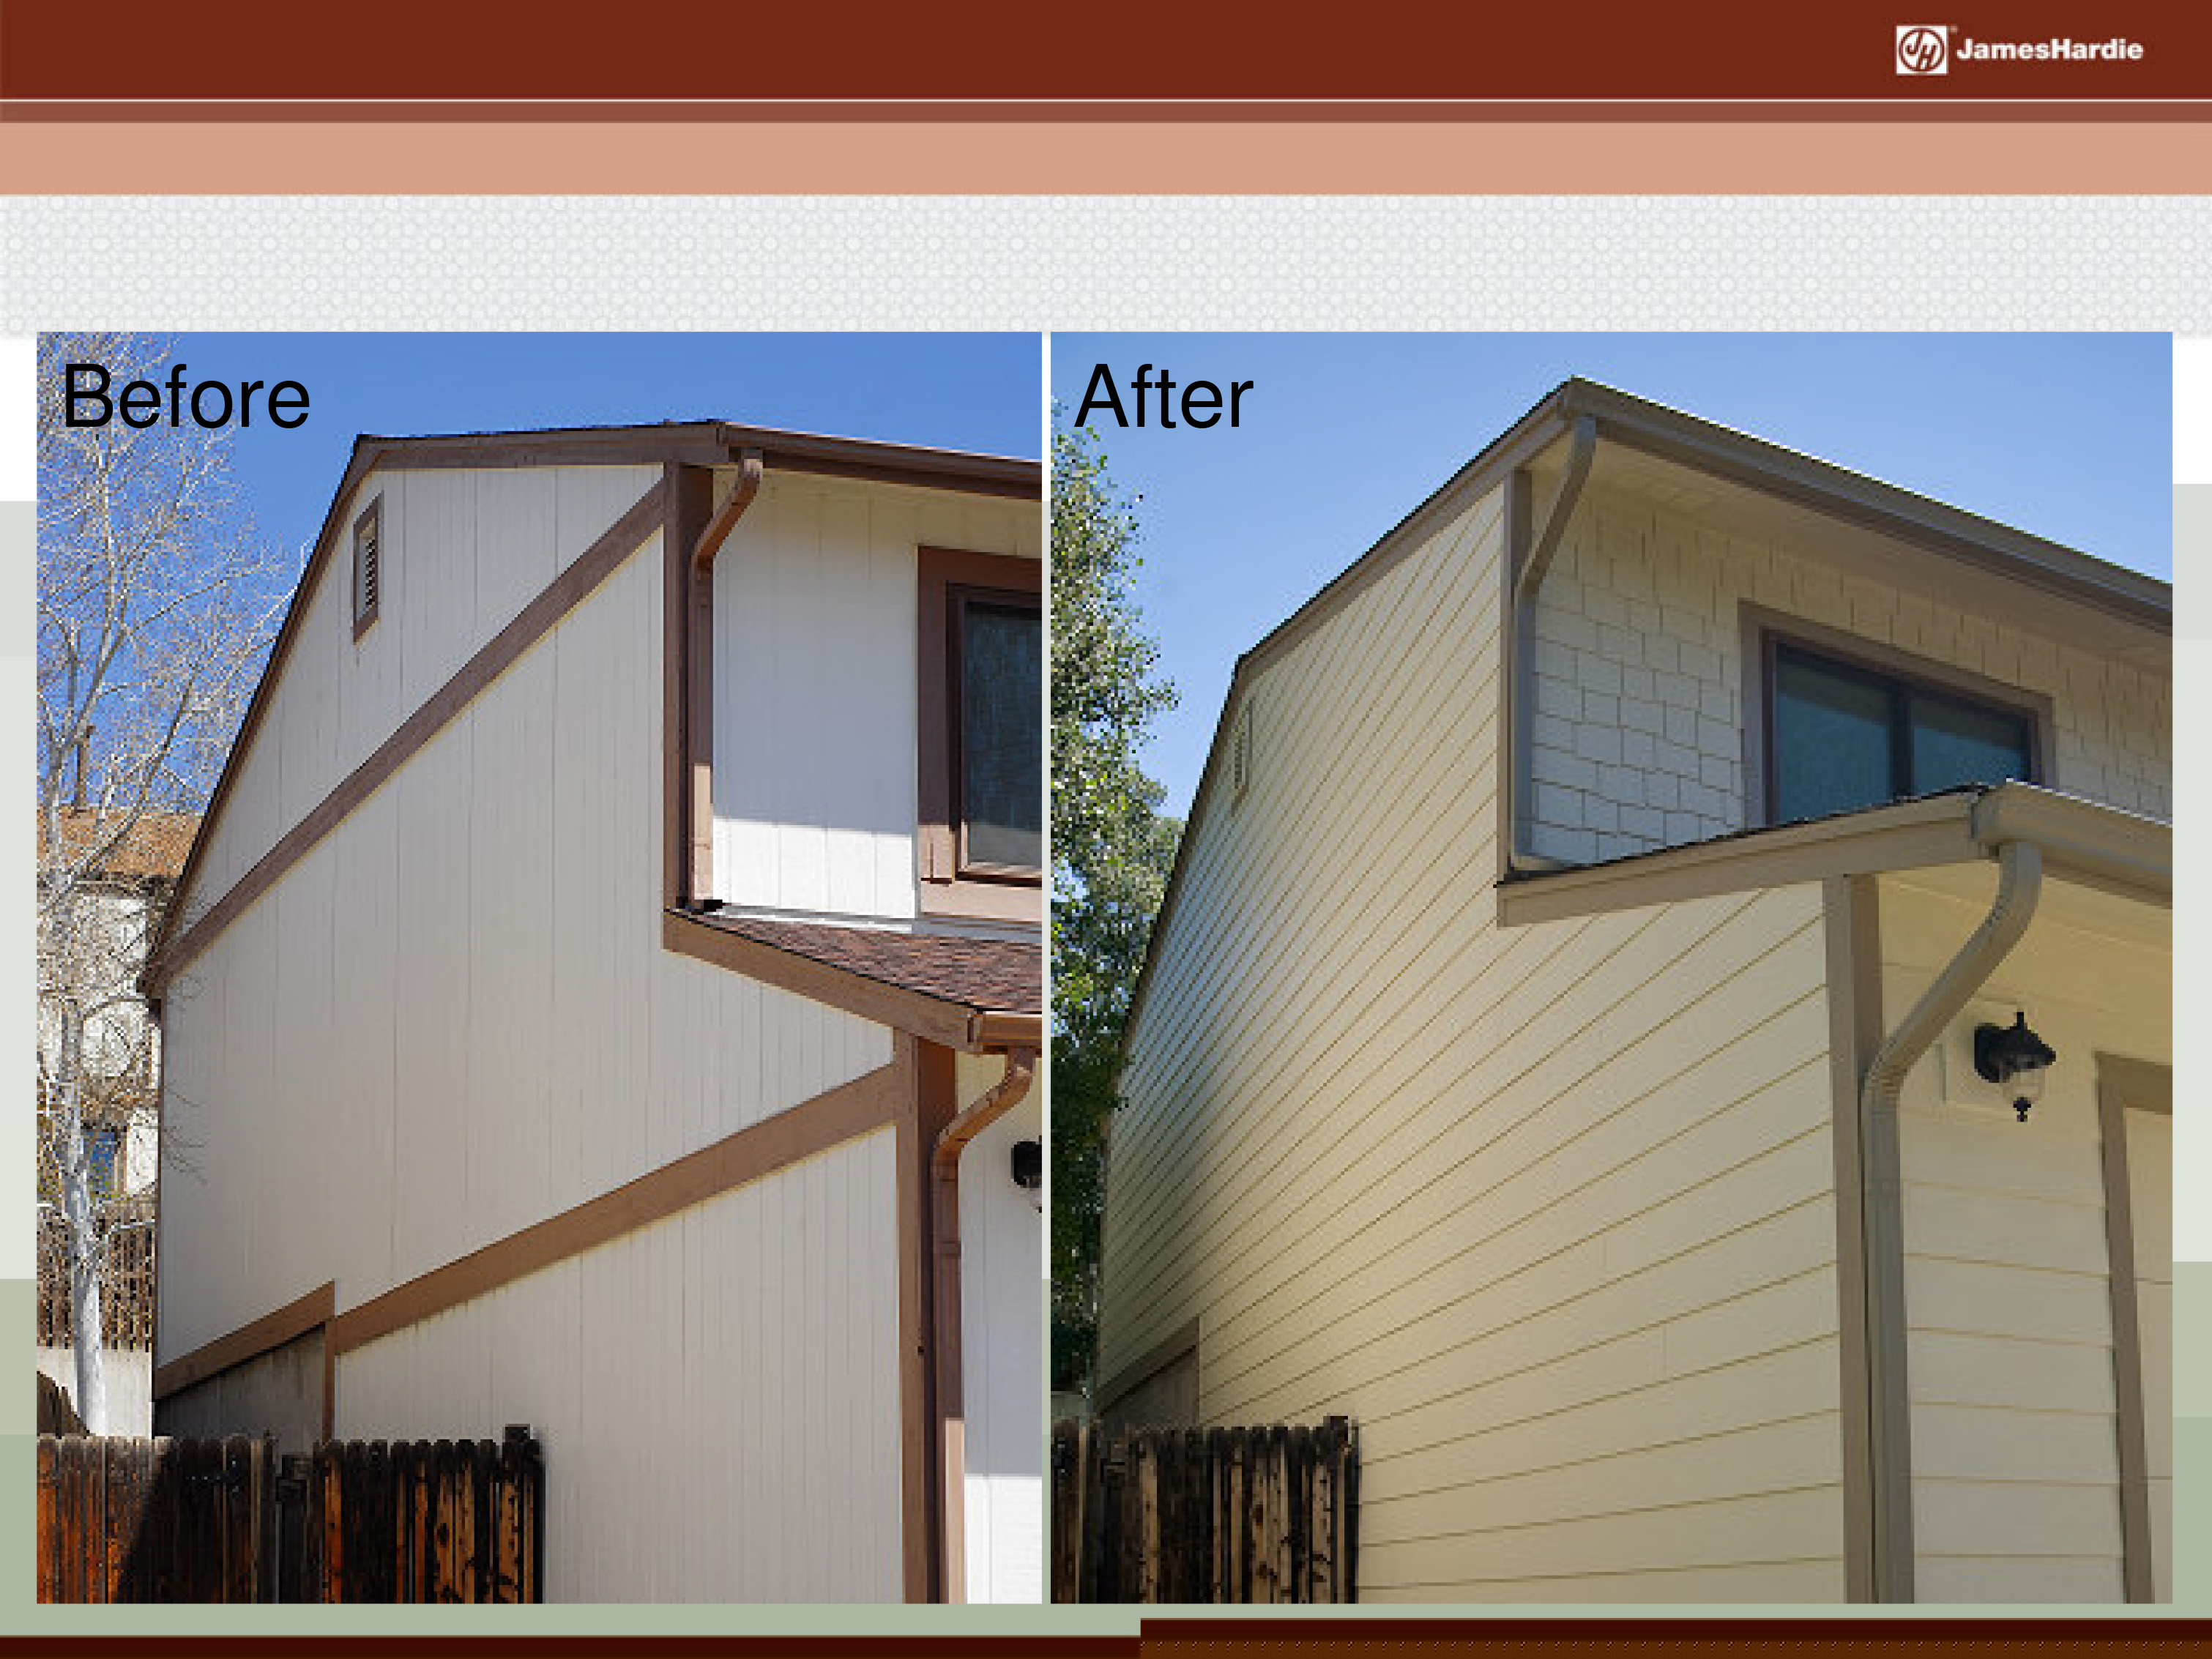 Before and After James Hardie Siding 23